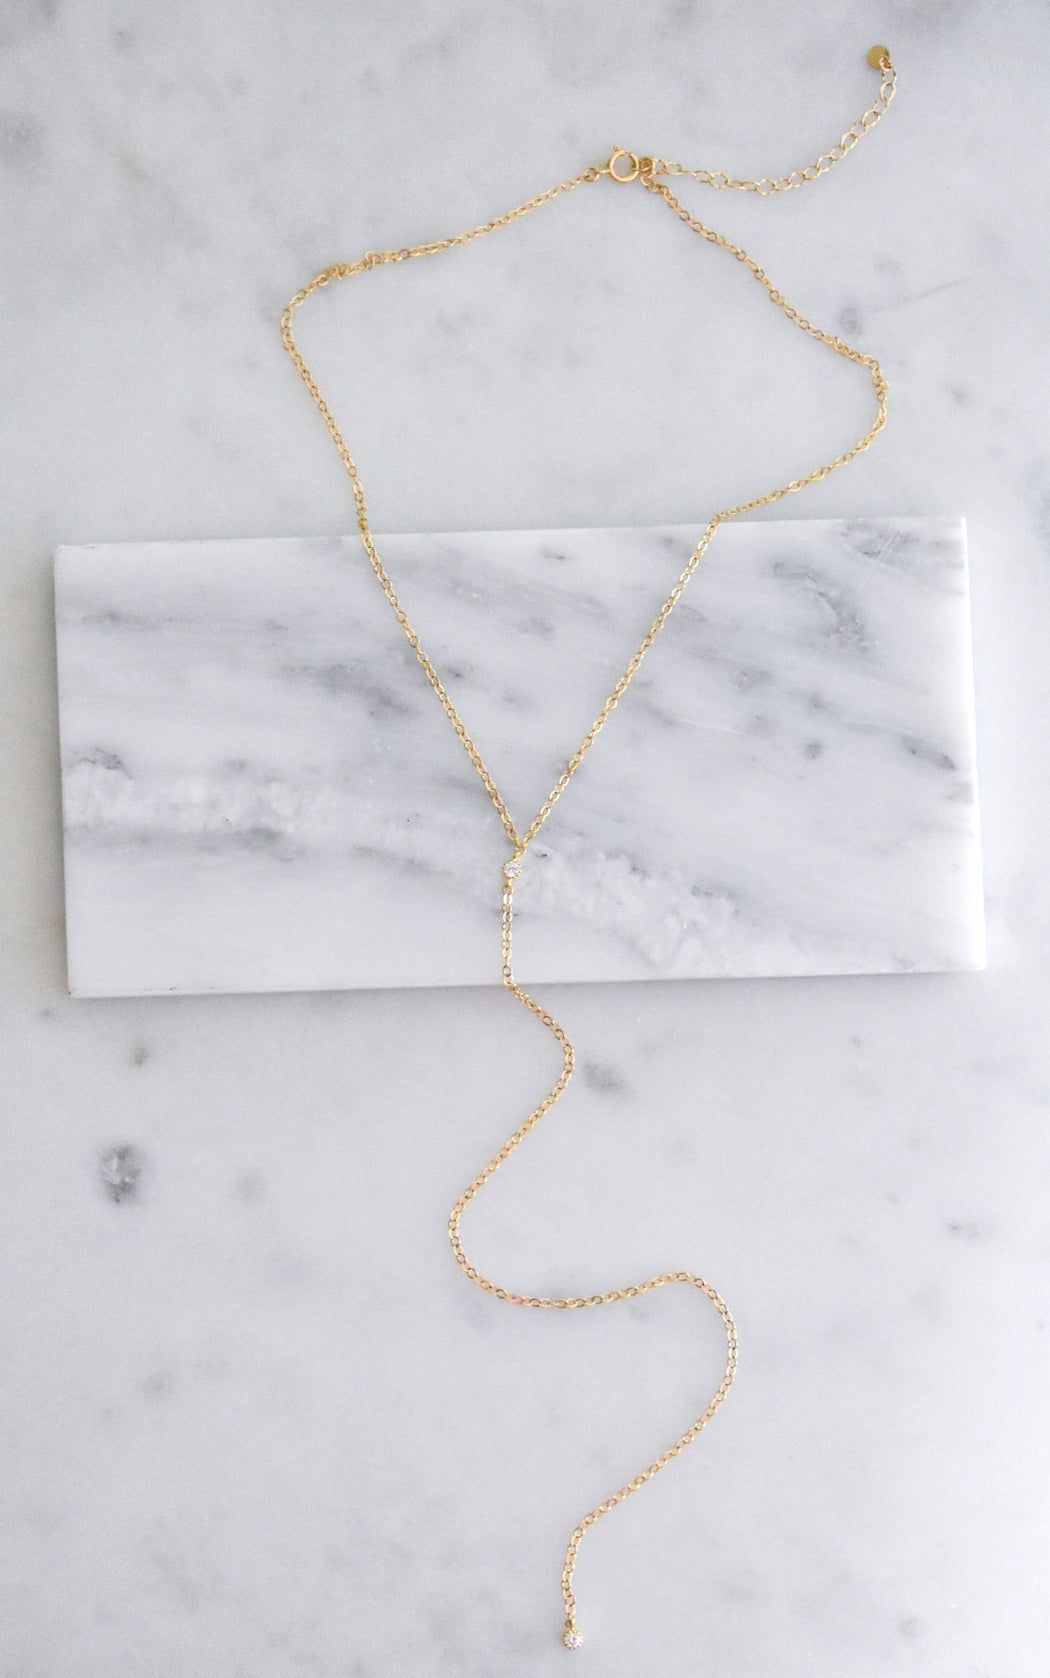 Y necklace, delicate lariat for everyday.